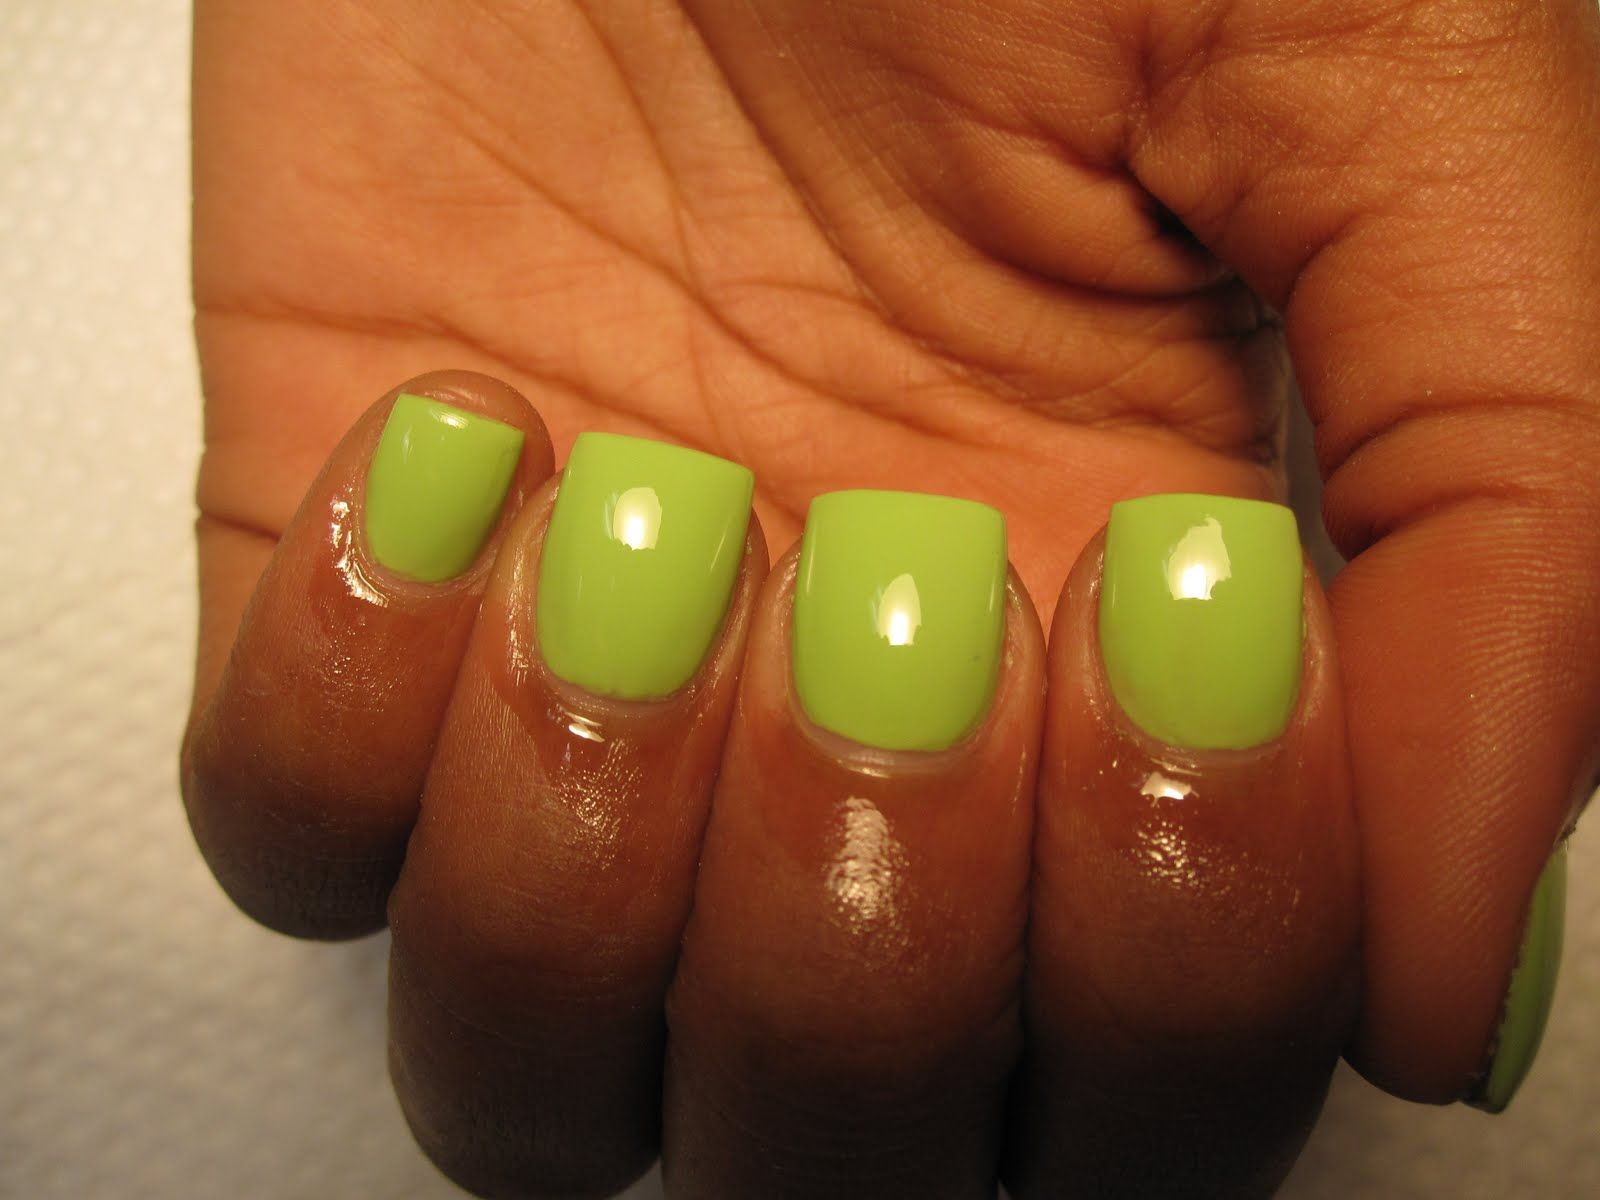 Short Lime Green Acrylic Nails With Images Green Acrylic Nails